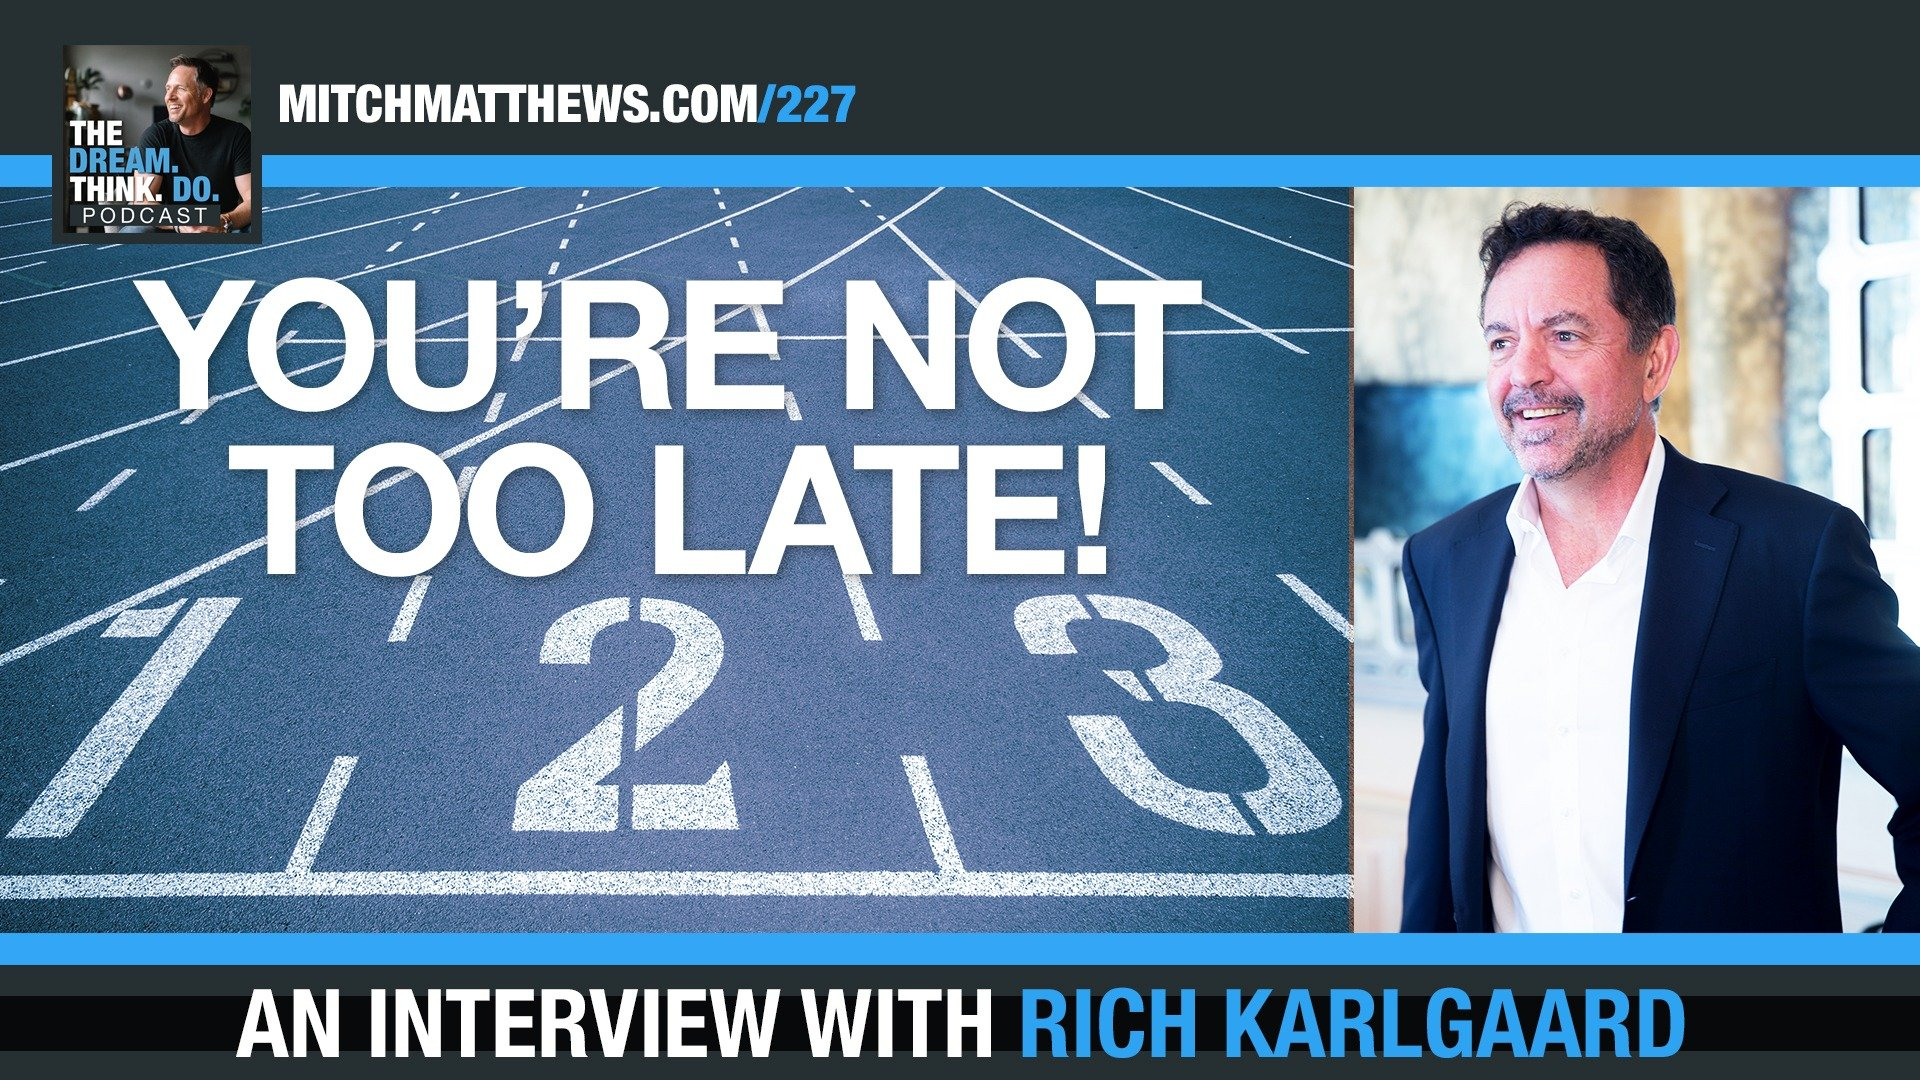 You're Not Too Late! With Forbes Magazine's Rich Karlgaard